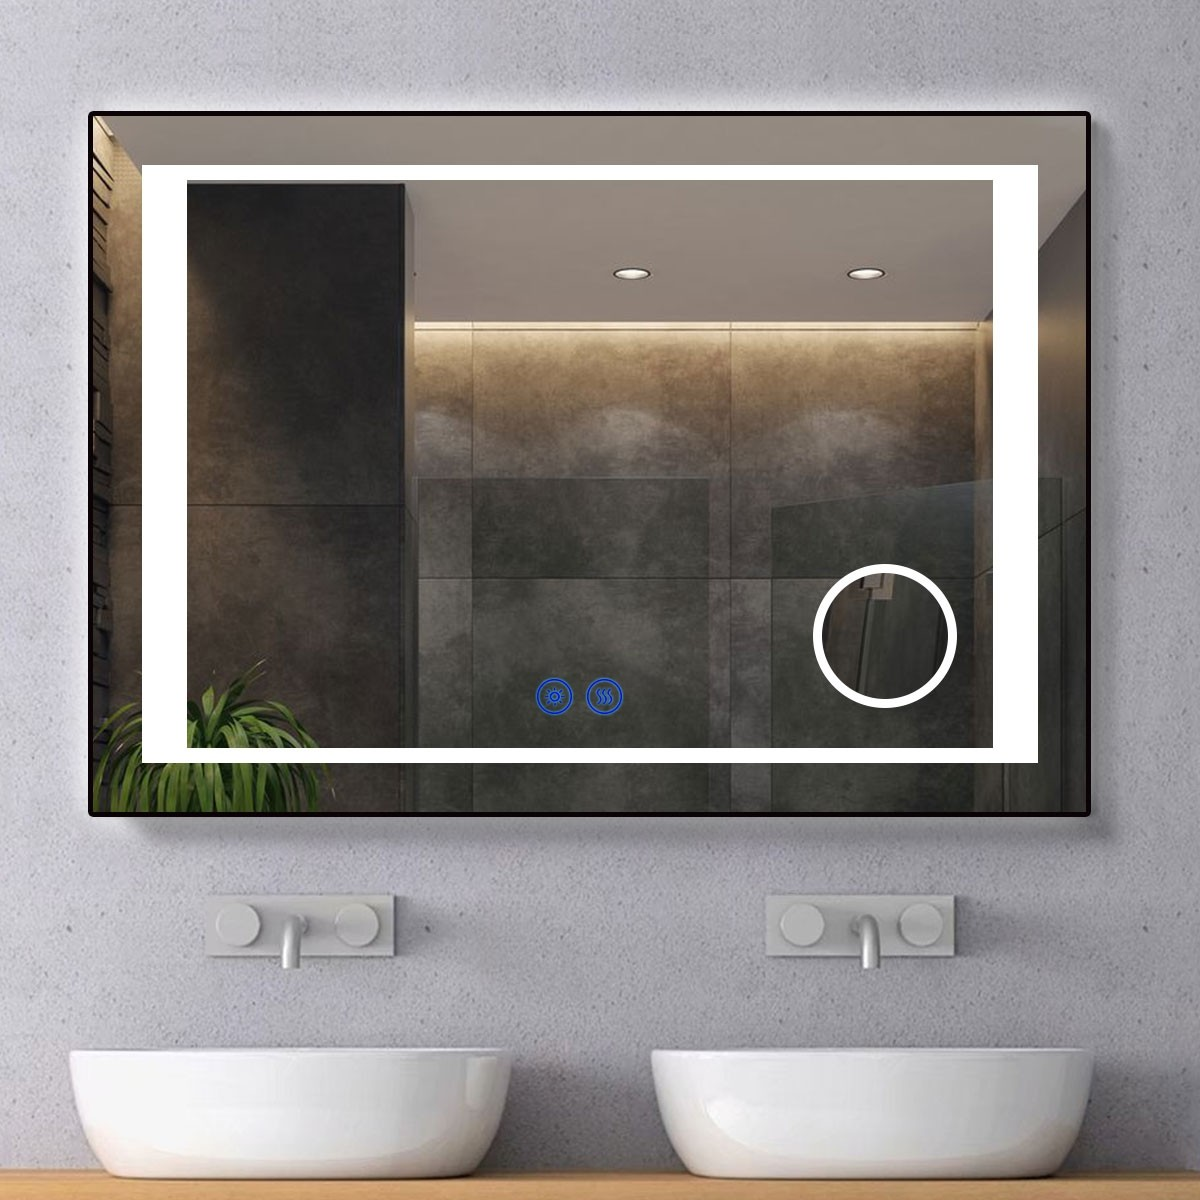 DECORAPORT 40 x 28 Inch LED Bathroom Mirror/Dress Mirror with Touch Button, Magnifier, Anti Fog, Dimmable, Vertical & Horizontal Mount (KT10-4028)